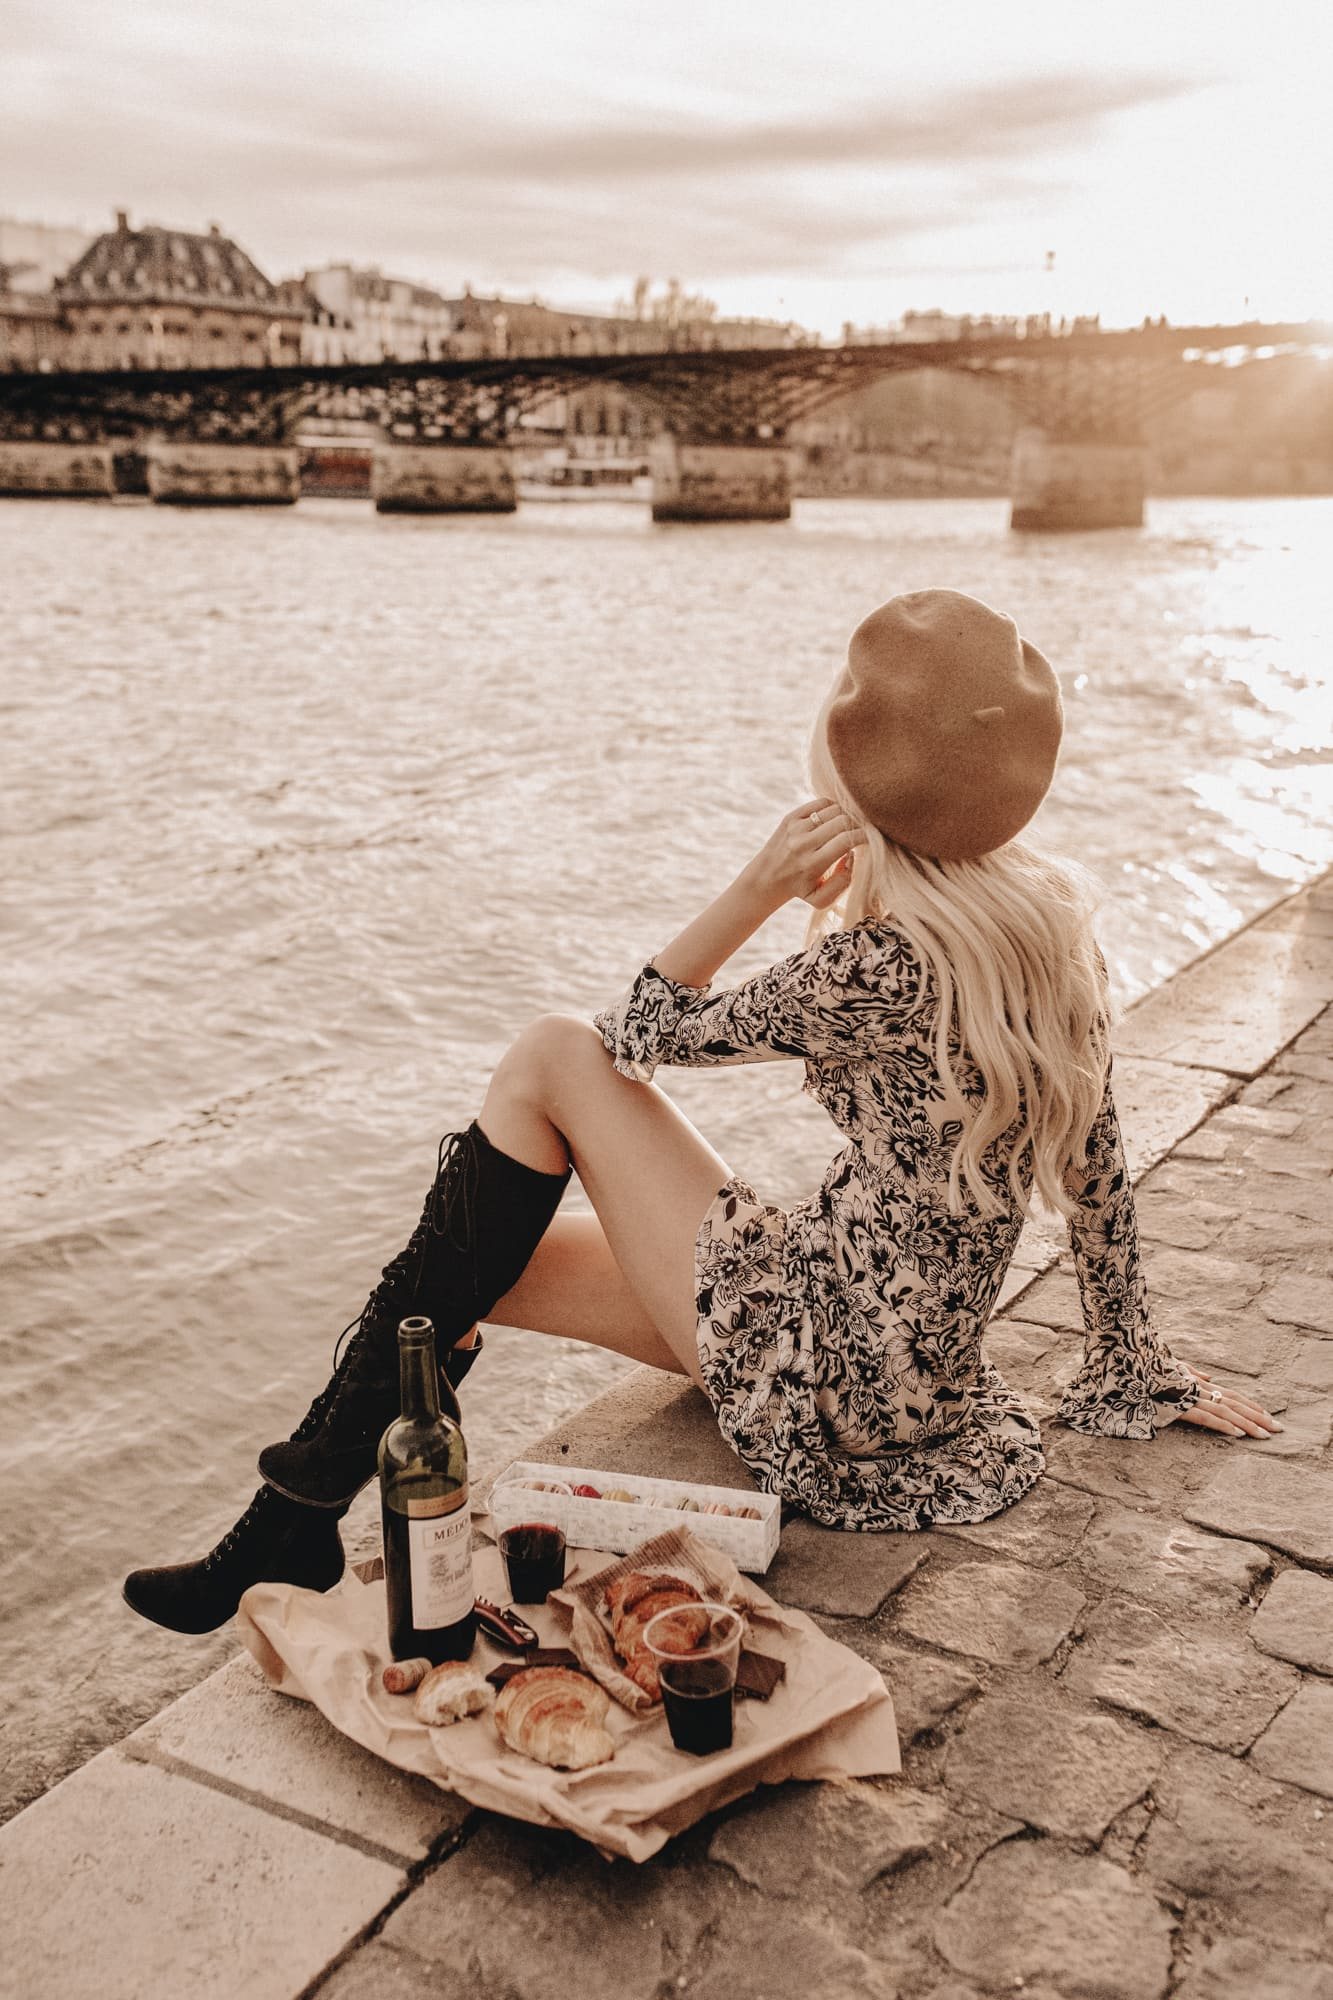 Sarah loven has picnic at La River Seine, golden hour